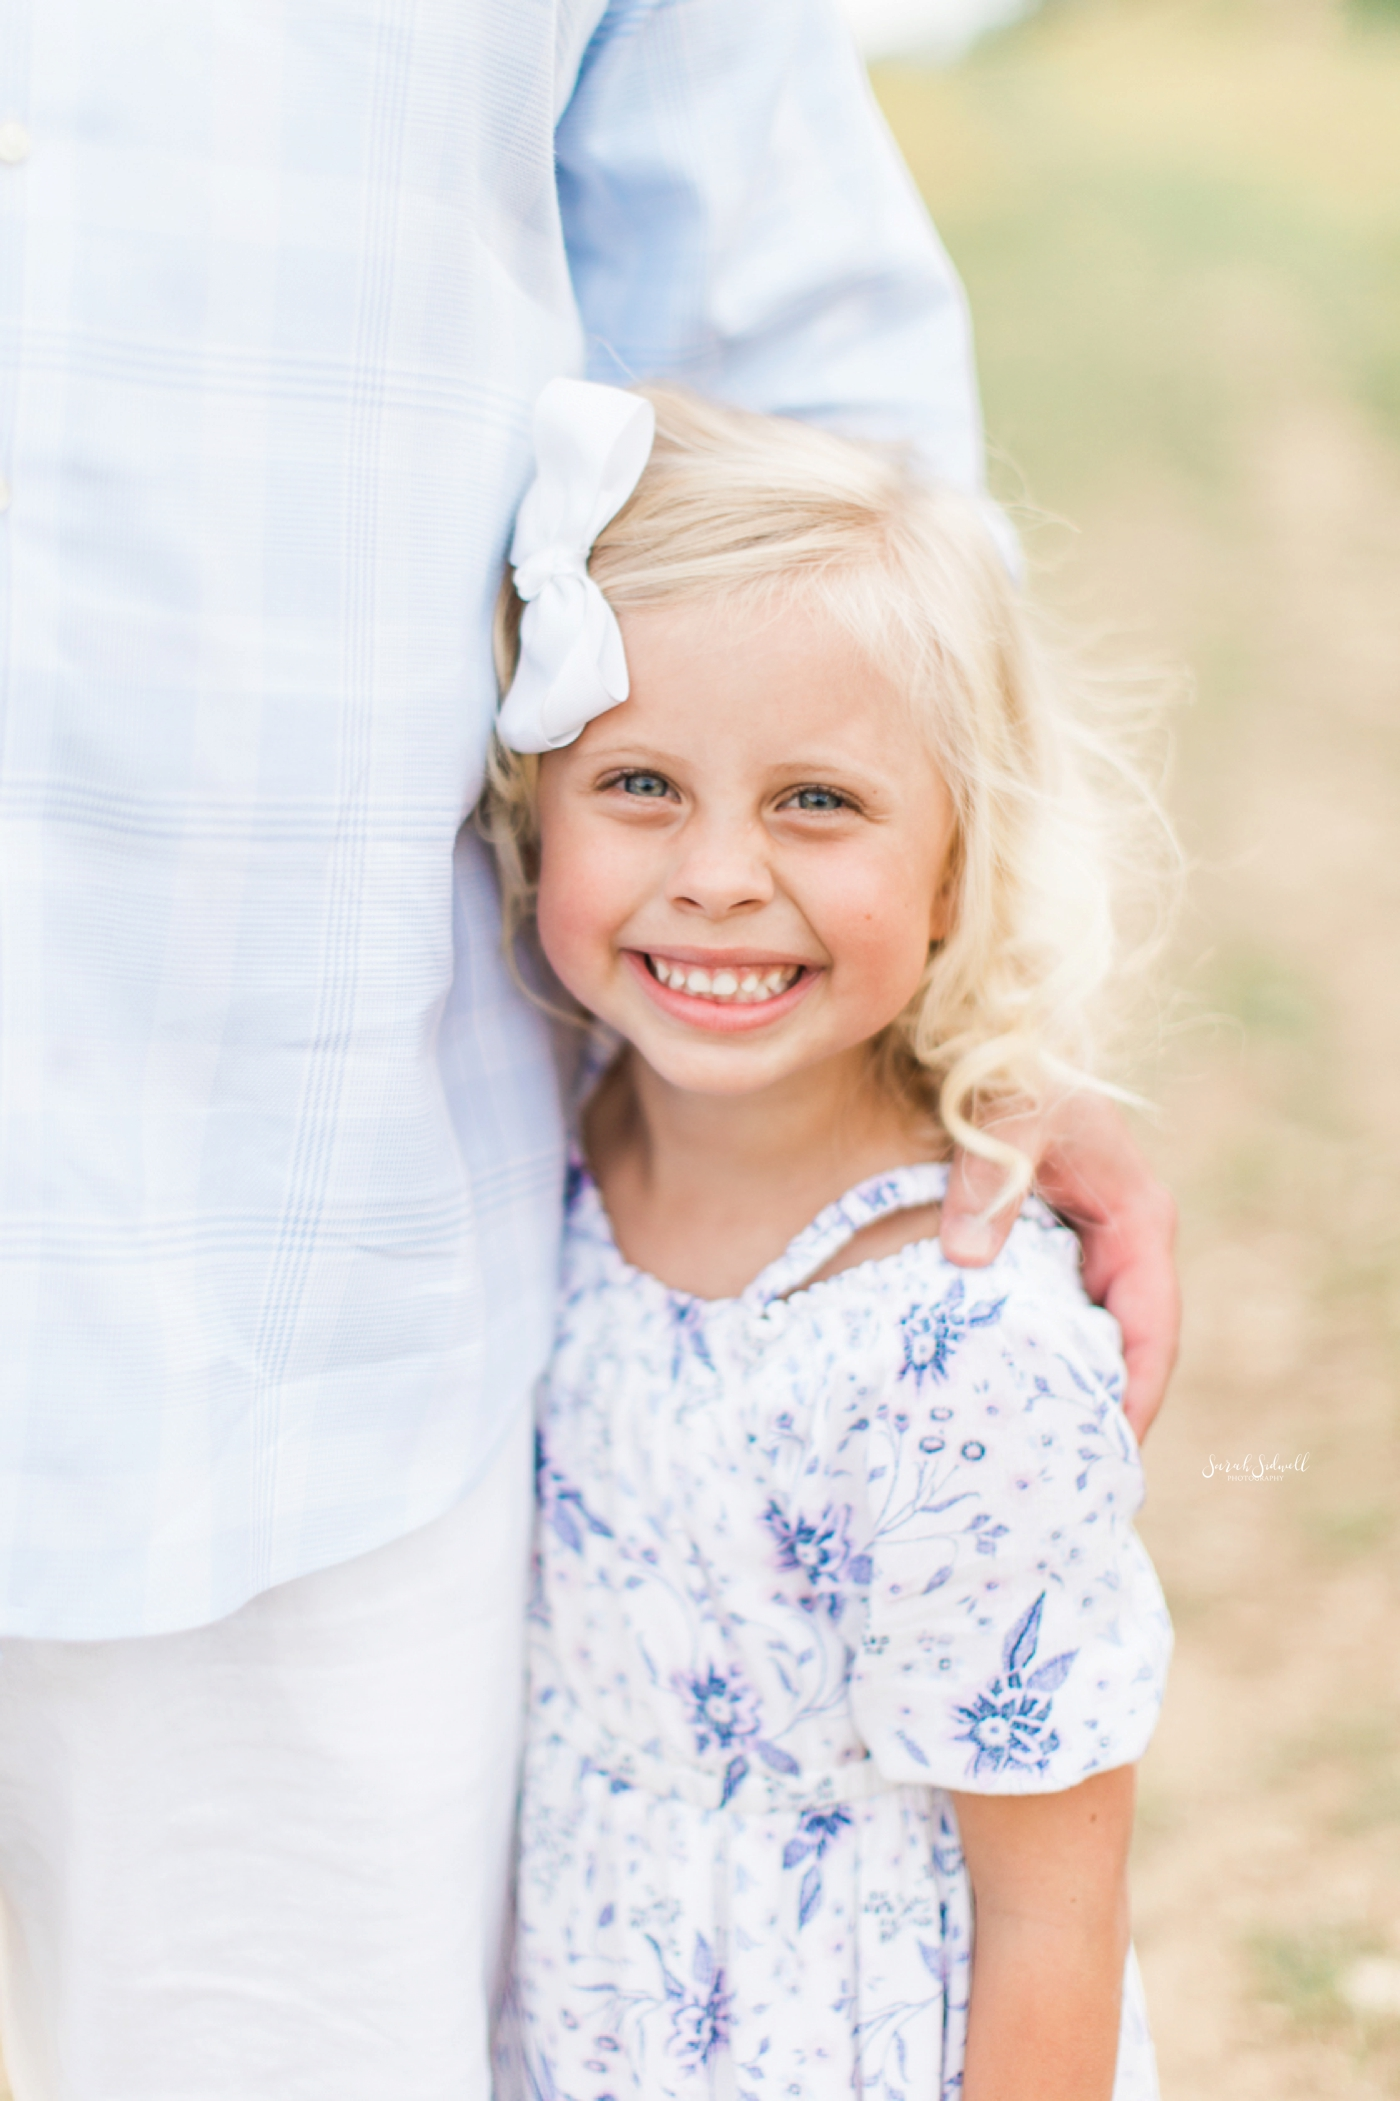 A girl hugs her dad during some family photography photos.